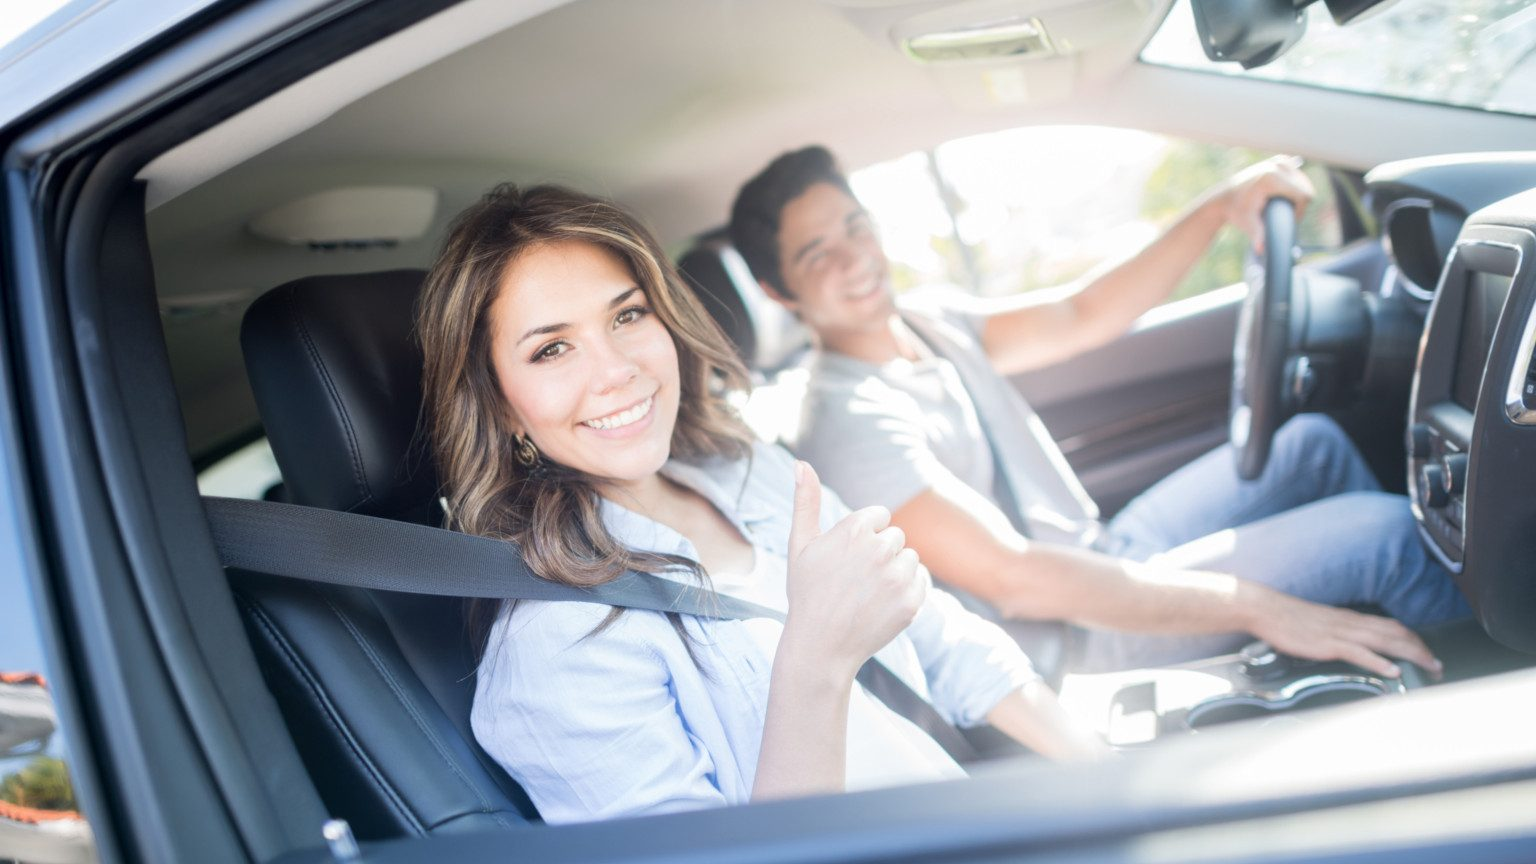 Woman giving thumbs up from passenger seat inside car